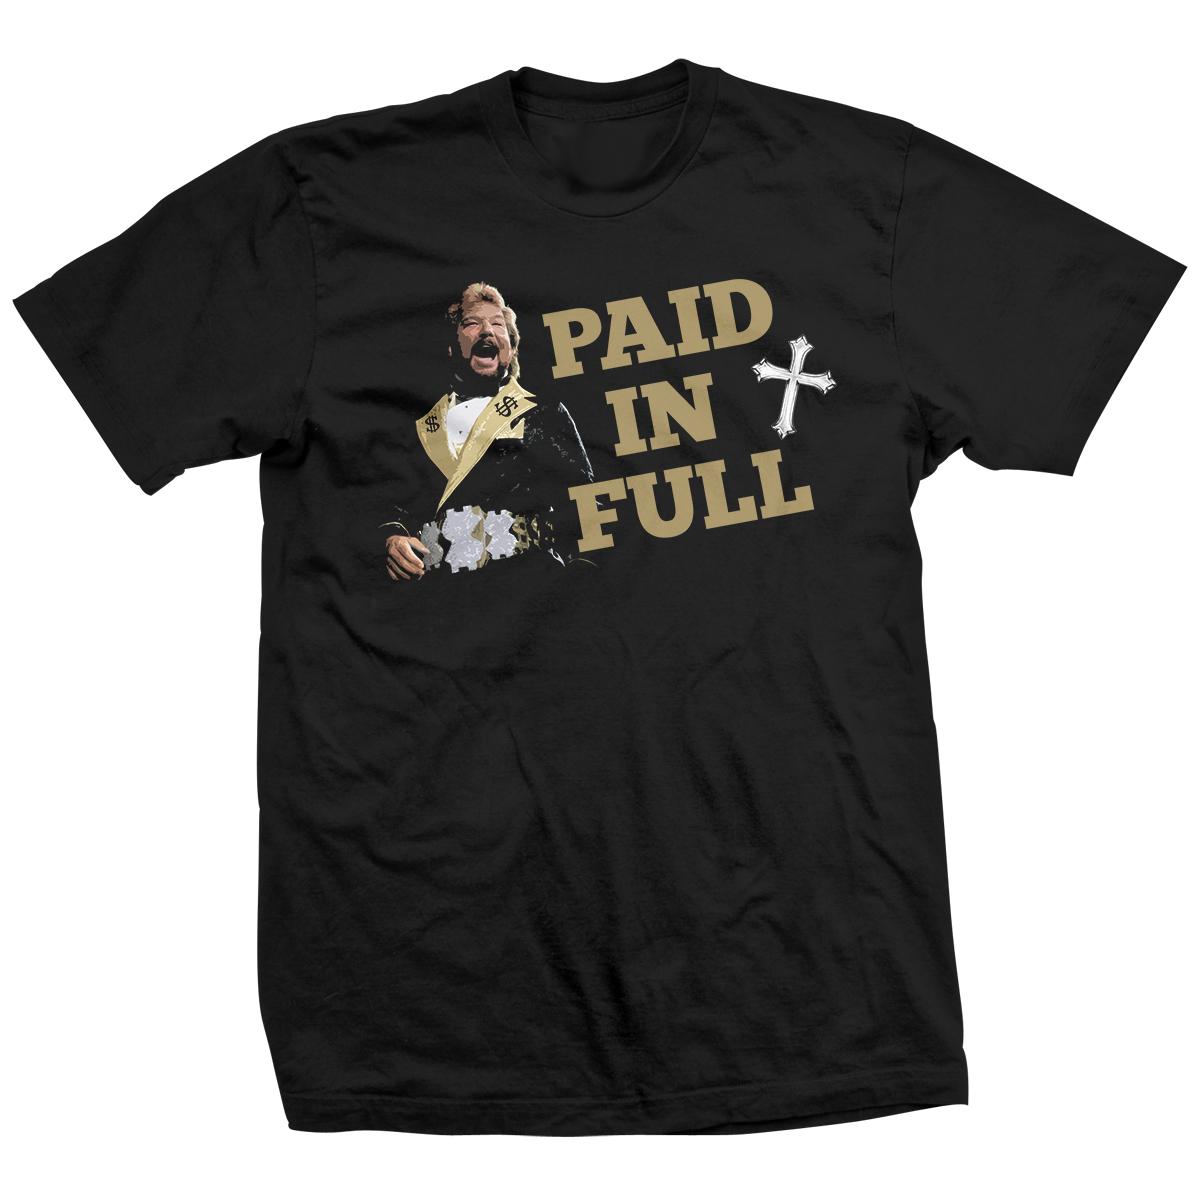 Ted Dibiase Paid in Full T-shirt